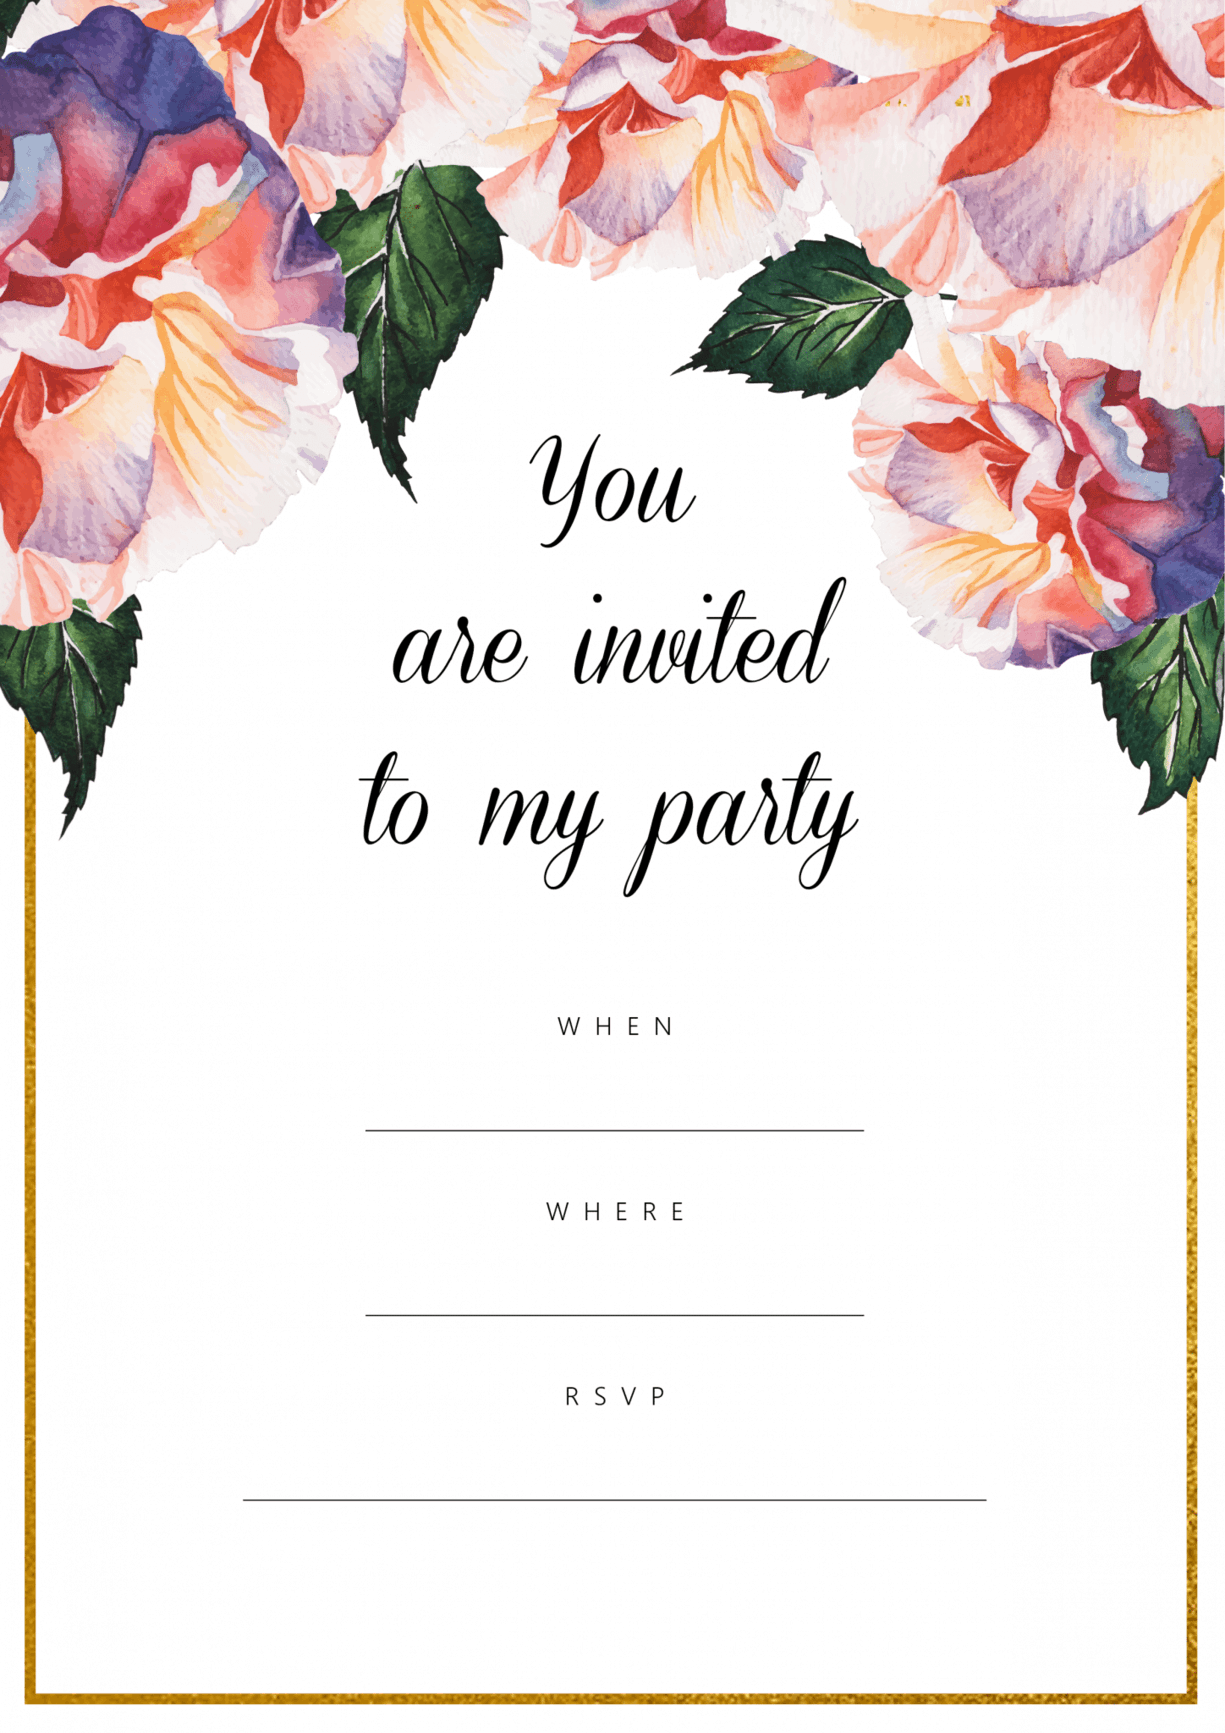 All Free Invitations | Free Printable Invites for all Occasions